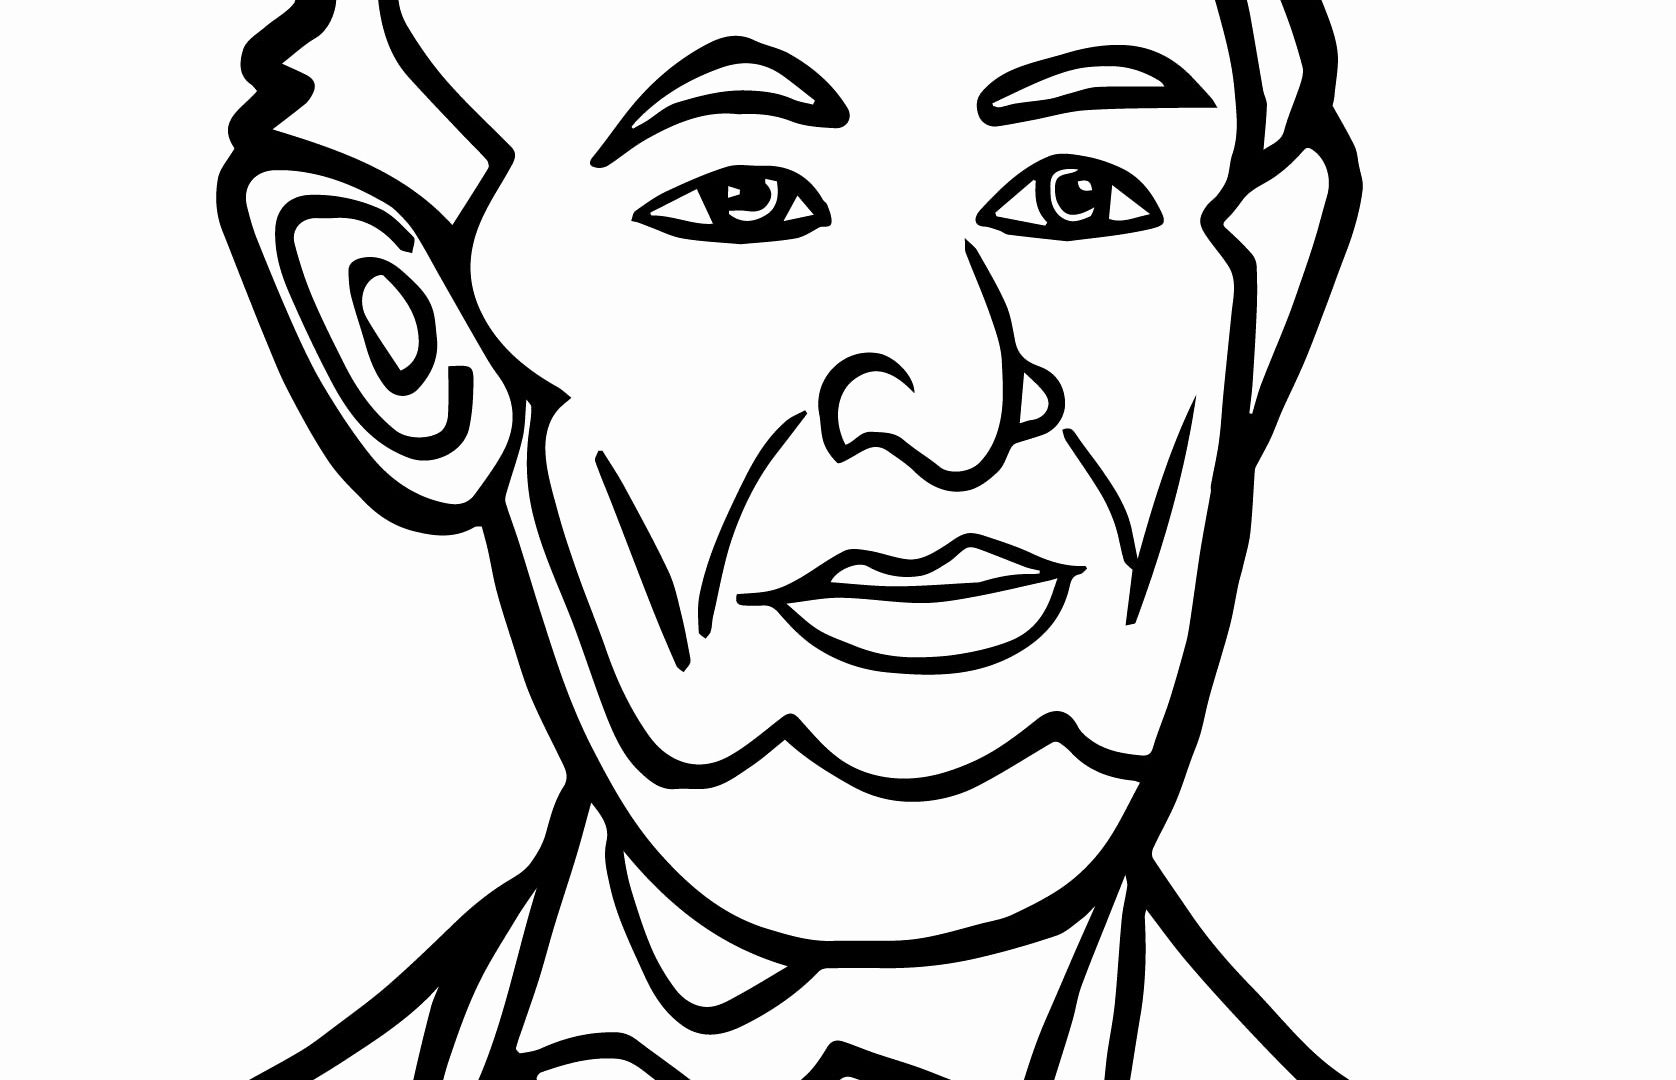 Abraham Lincoln Coloring Pages Printable At Getcolorings